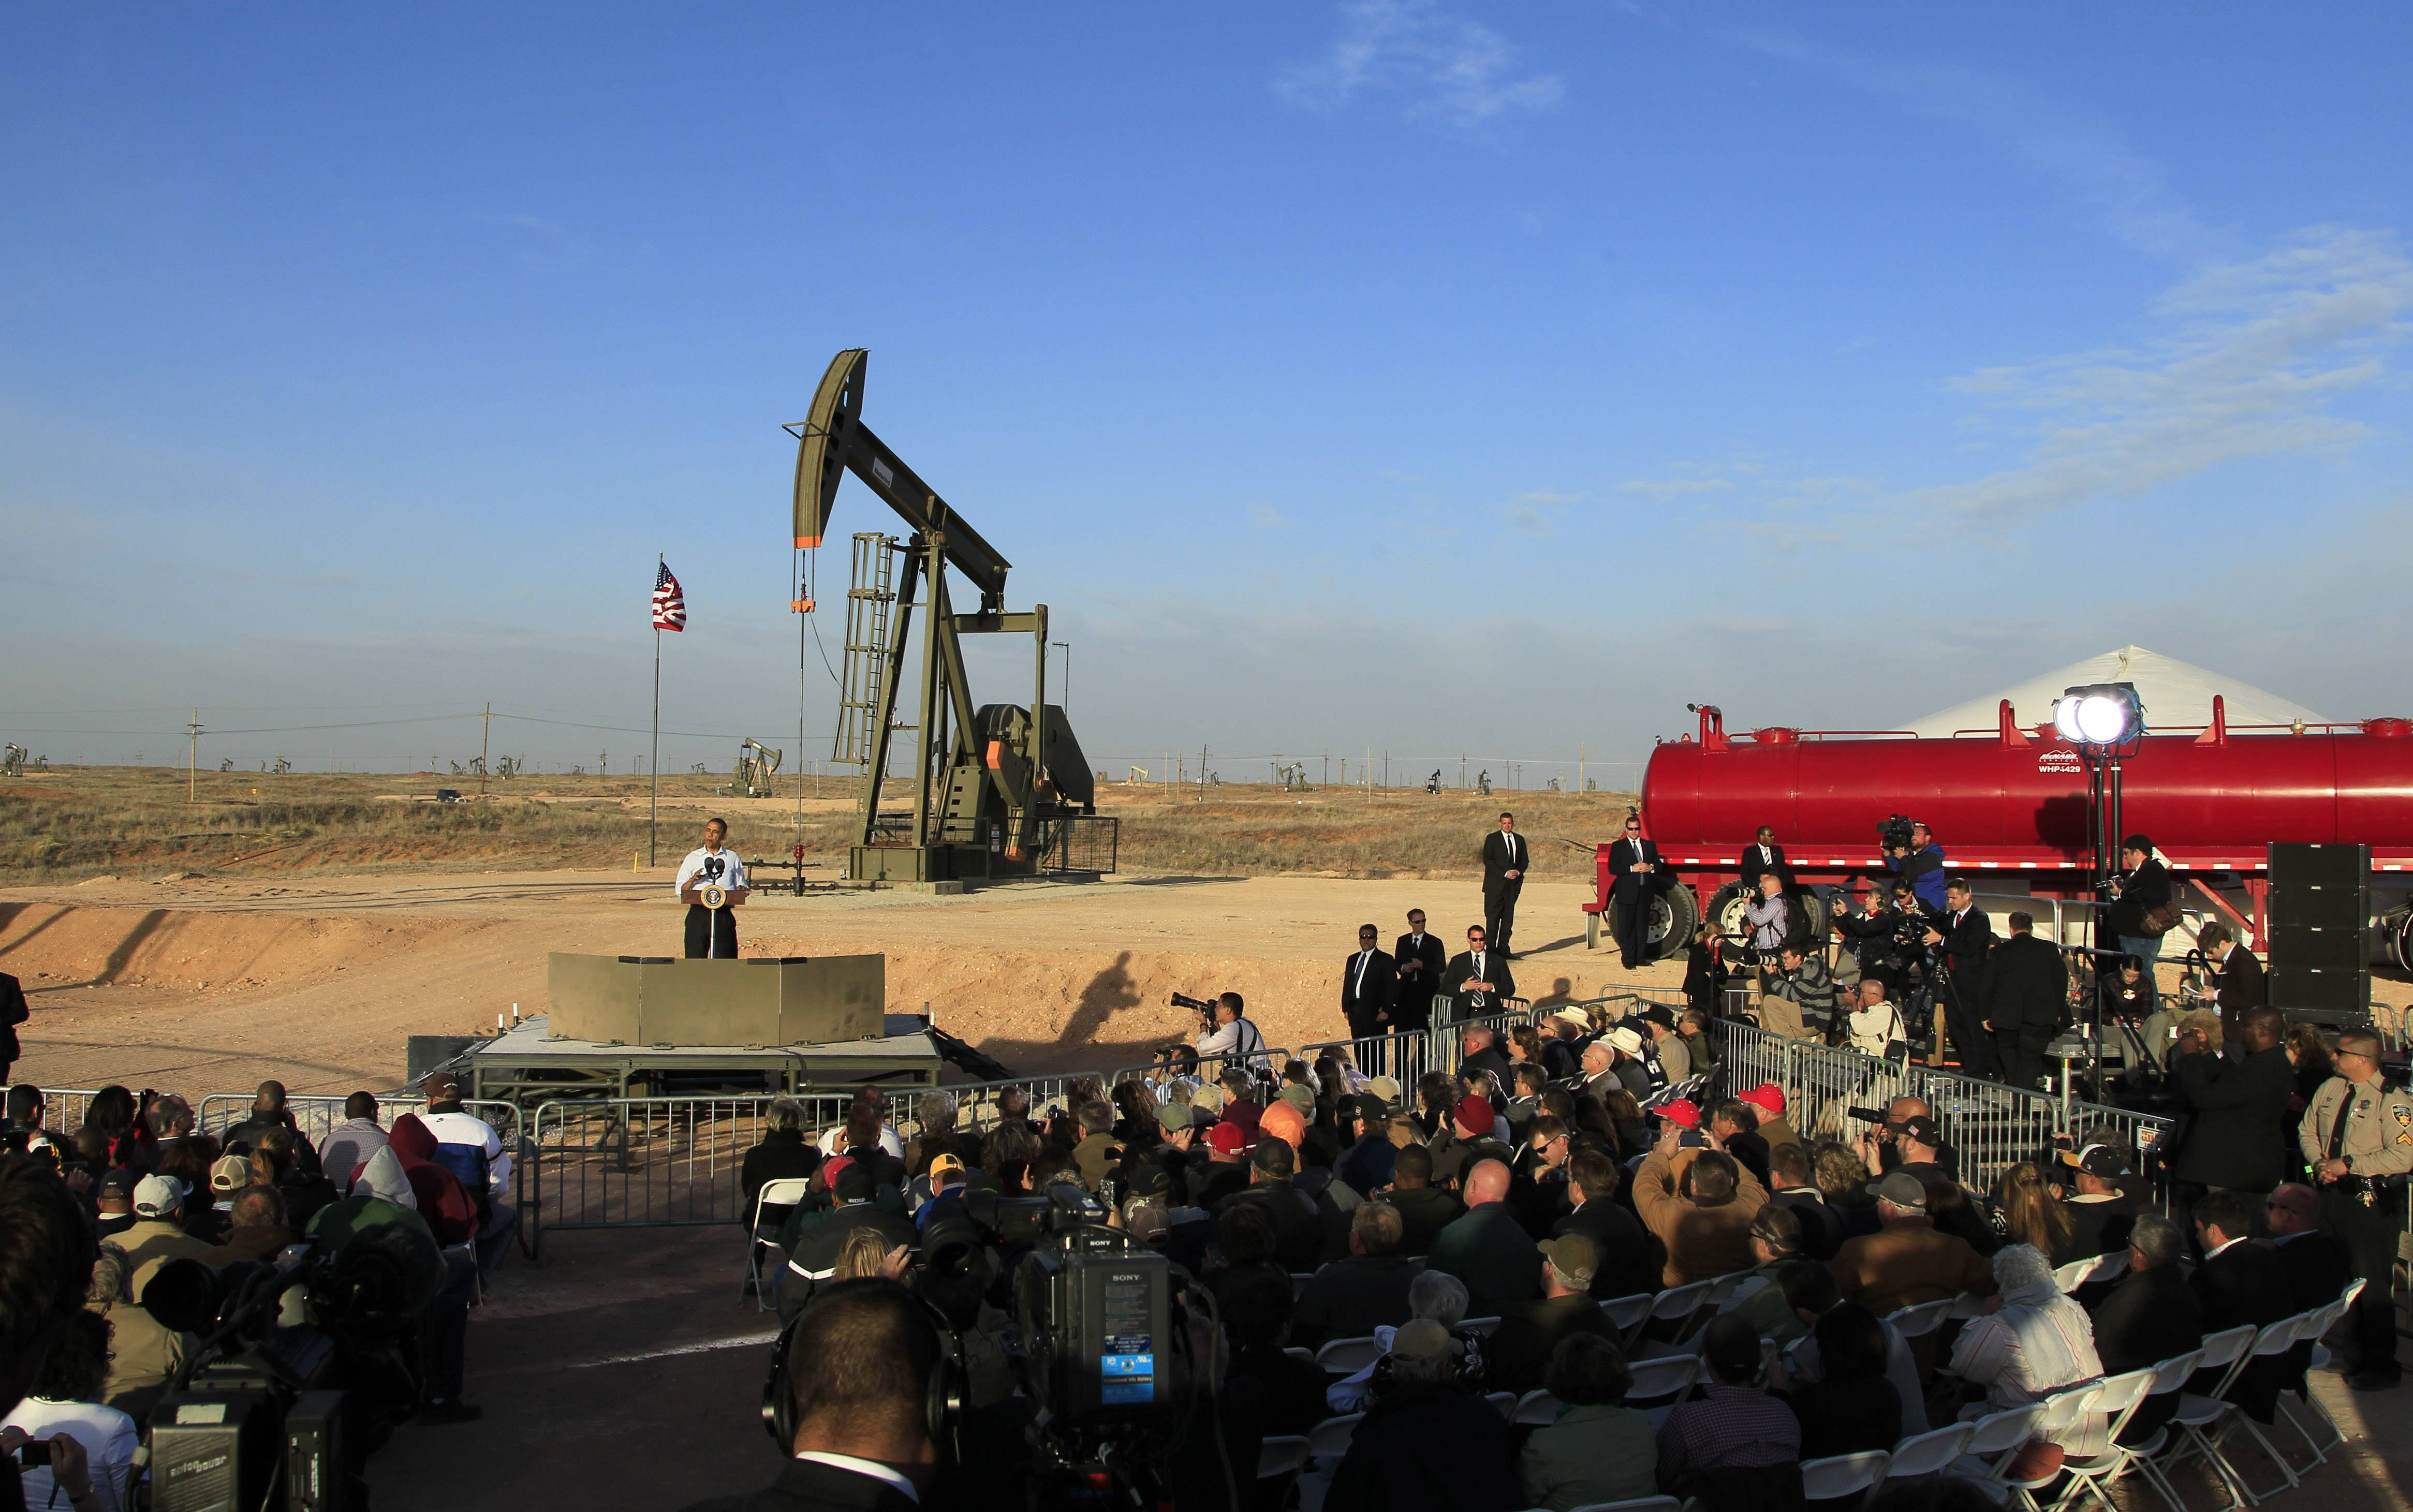 Associated PressWith oil pump jacks as a backdrop, President Barack Obama speaks at an oil and gas field on federal lands in Maljamar, N.M. The government has failed to inspect thousands of oil and gas wells it considers potentially high risks for water contamination and other environmental damage, congressional investigators say.